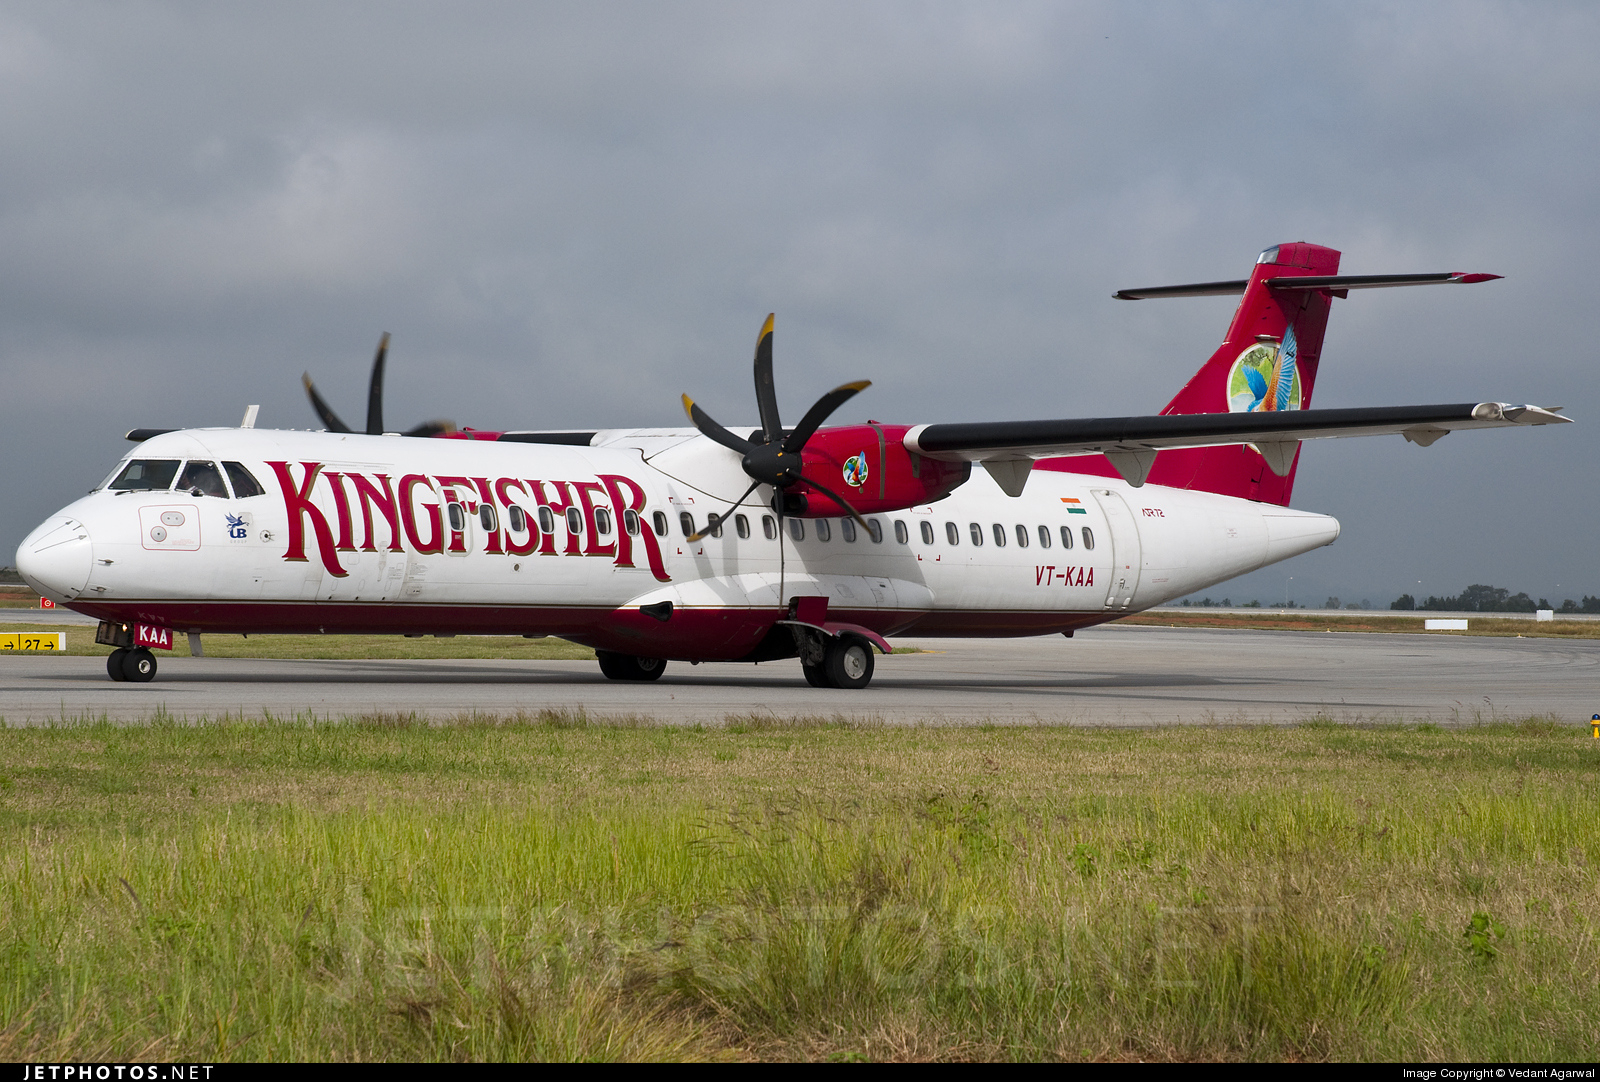 Air Pegasus Takes Delivery Of Its First Plane Former Kingfisher Airlines ATR72